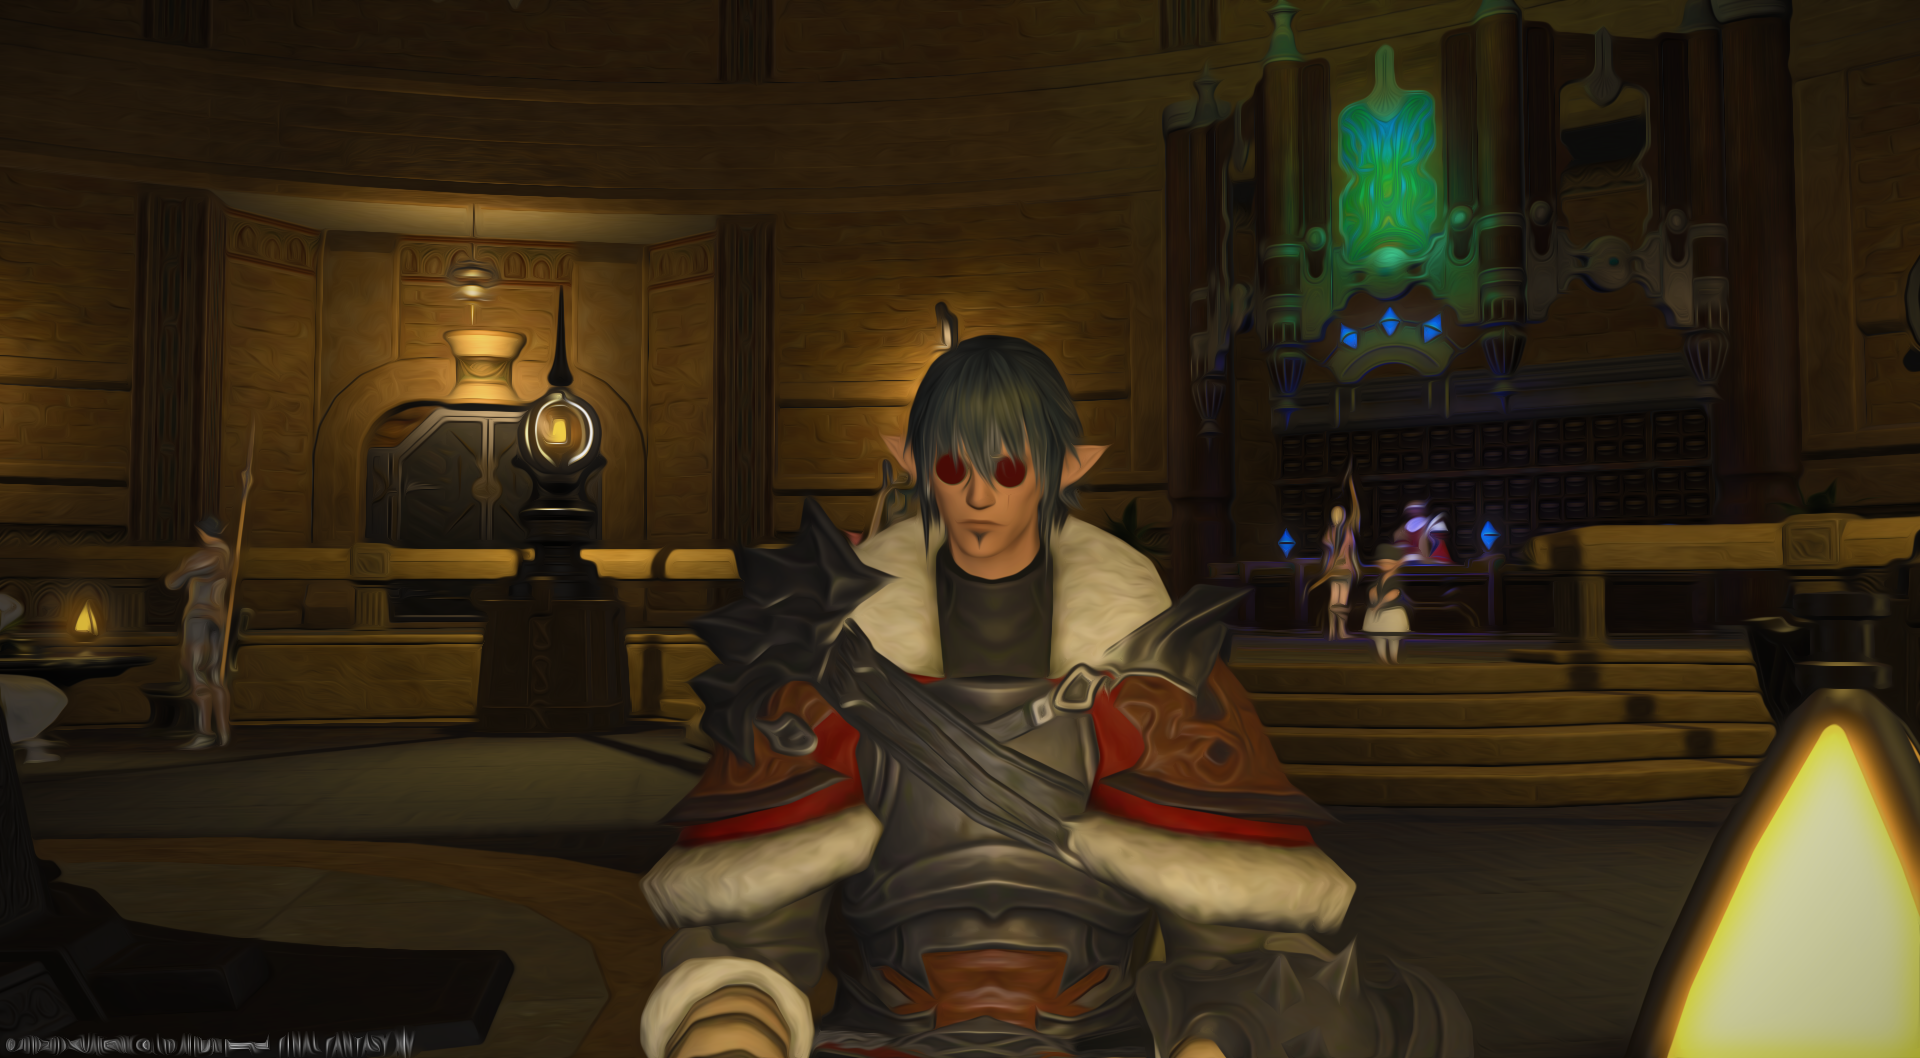 null ffxiv limsa through tonight well screenshots lifted phase beta